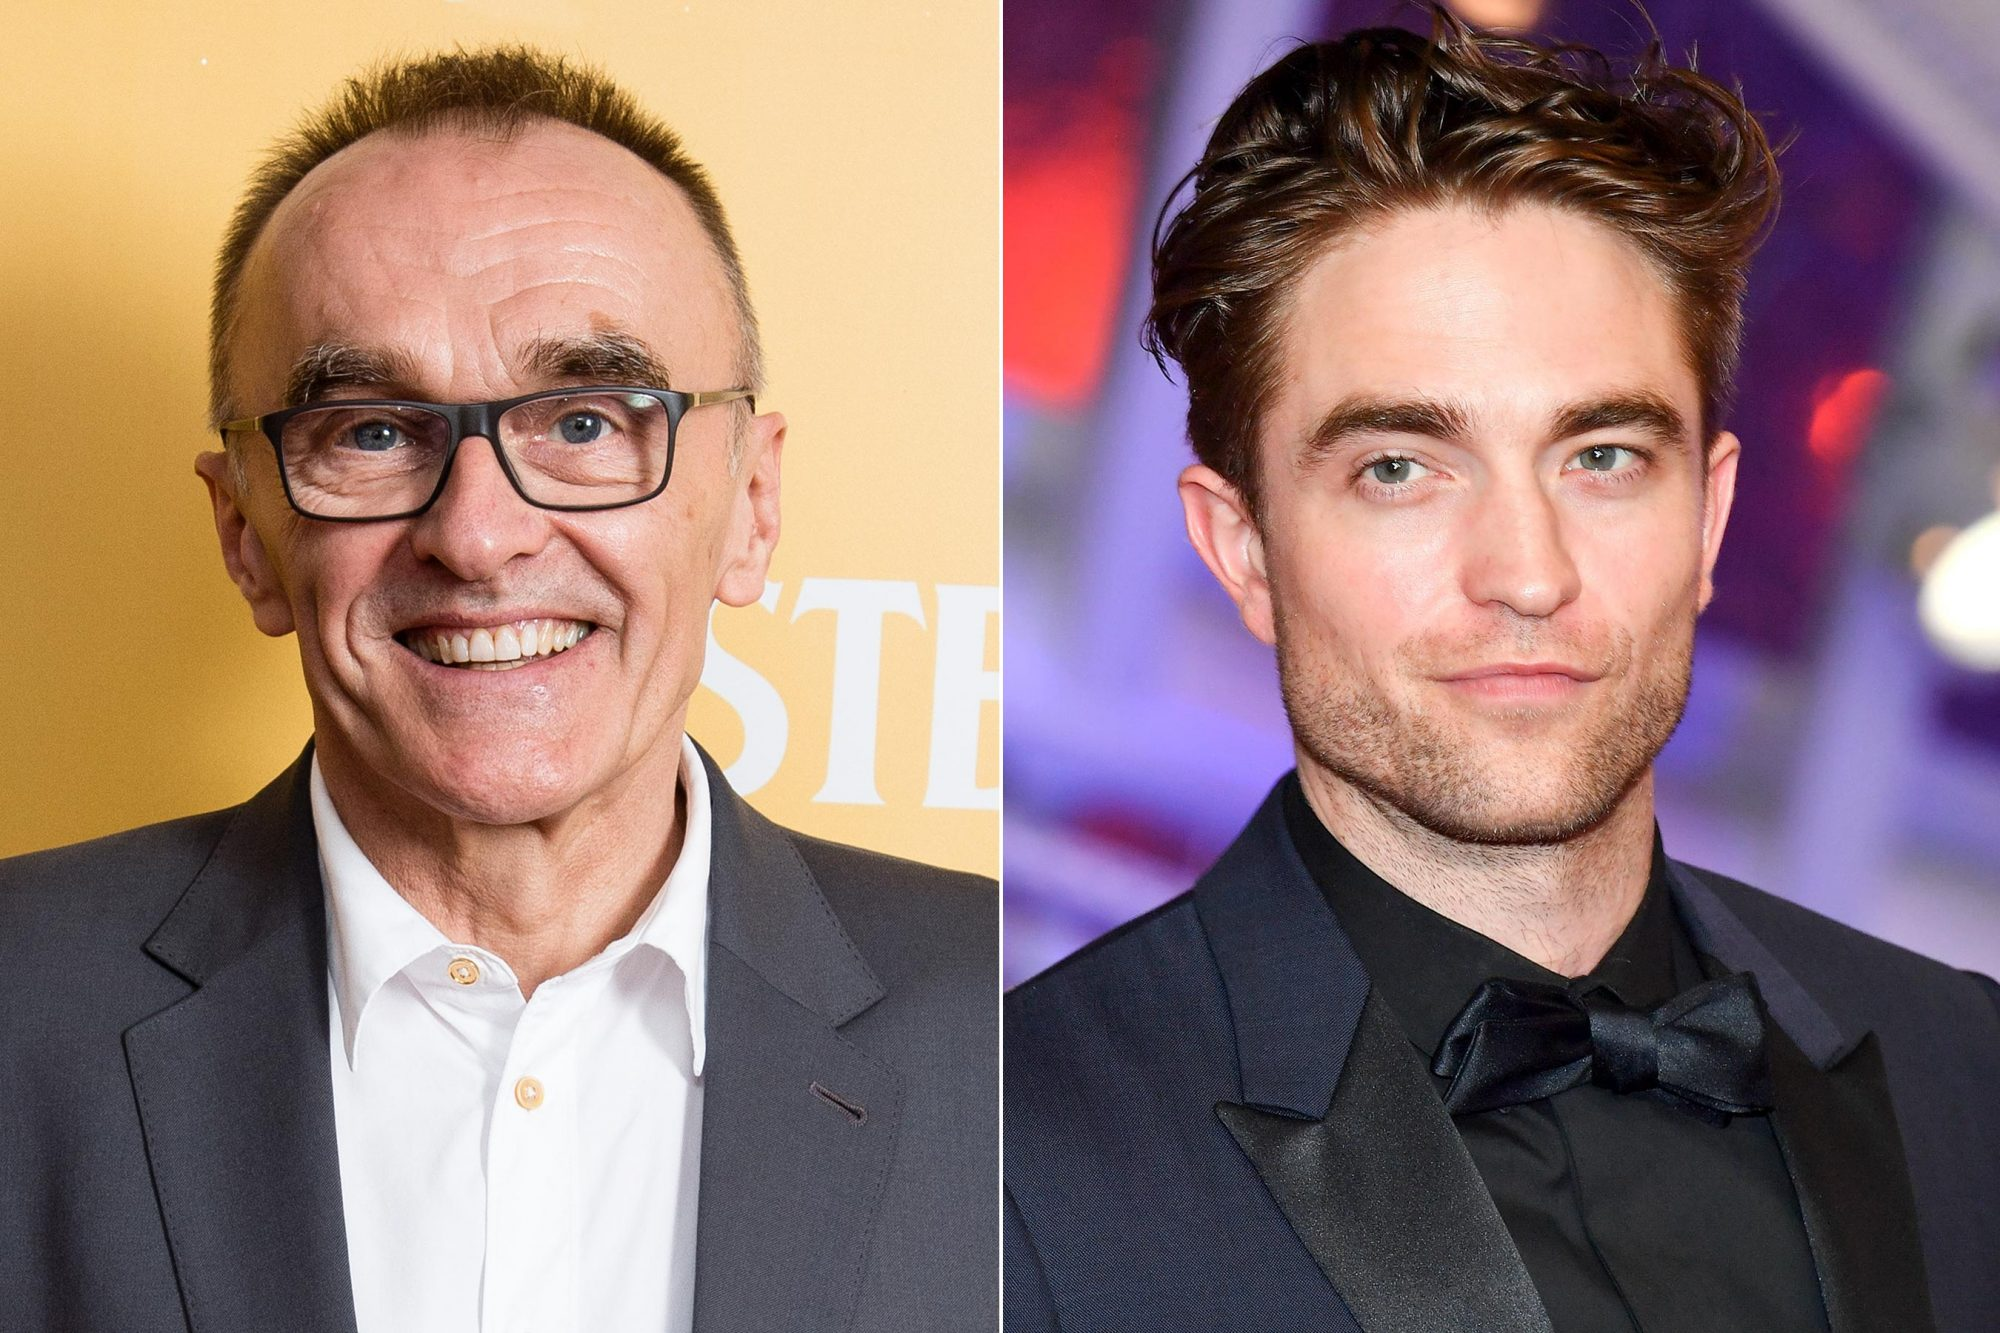 GORLESTON-ON-SEA, ENGLAND - JUNE 21: Director Danny Boyle attends special screening of Yesterday on June 21, 2019 in Gorleston-on-Sea, England. (Photo by Jeff Spicer/Getty Images for Universal Pictures International) MARRAKECH, MOROCCO - NOVEMBER 30: Actor Robert Pattinson attends the Opening Ceremony of the 17th Marrakech International Film Festival on November 30, 2018 in Marrakech, Morocco. (Photo by Stephane Cardinale - Corbis/Corbis via Getty Images)